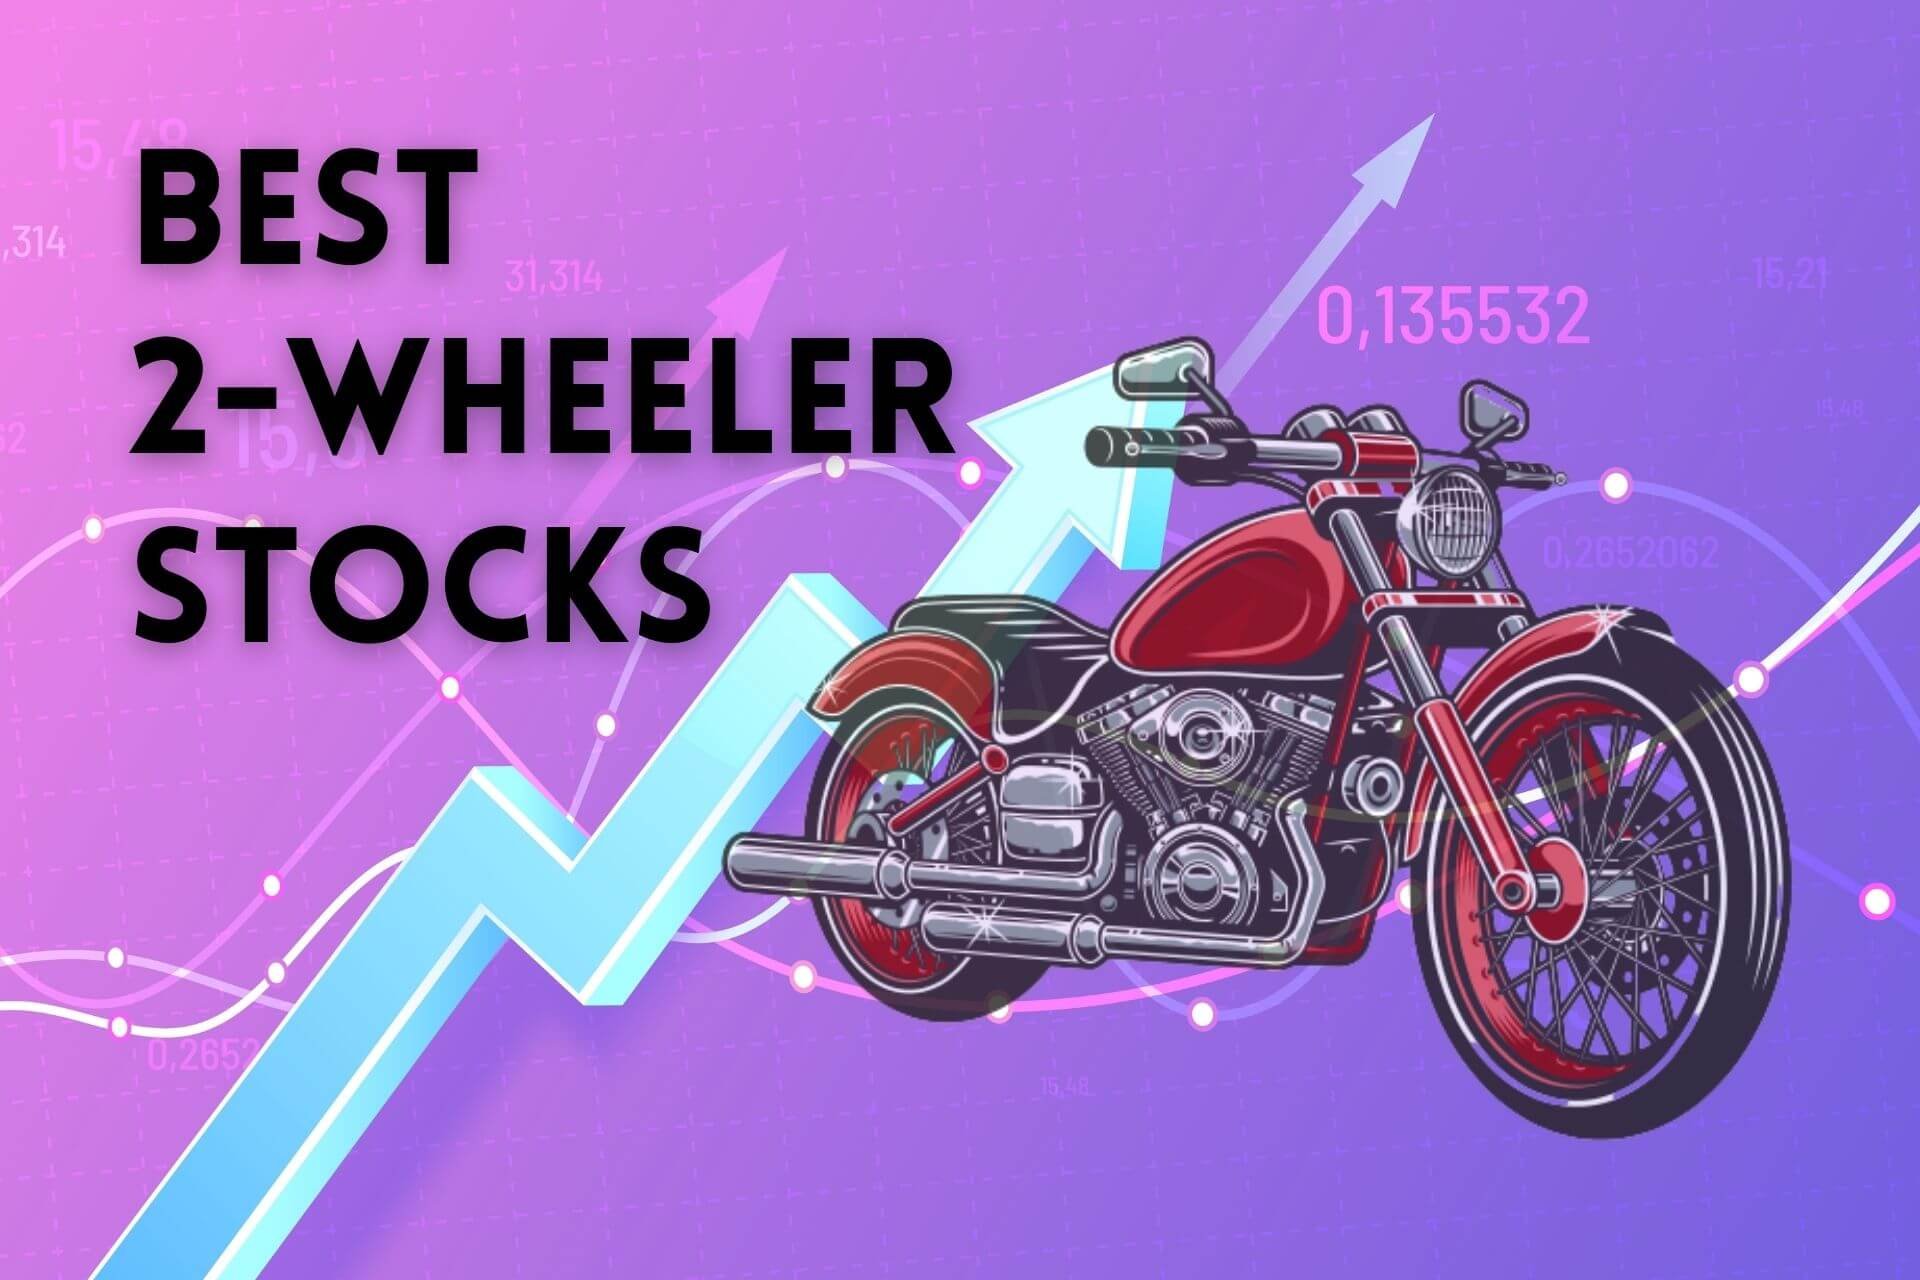 Looking for Top Two-Wheeler Stocks in India? Find out here!